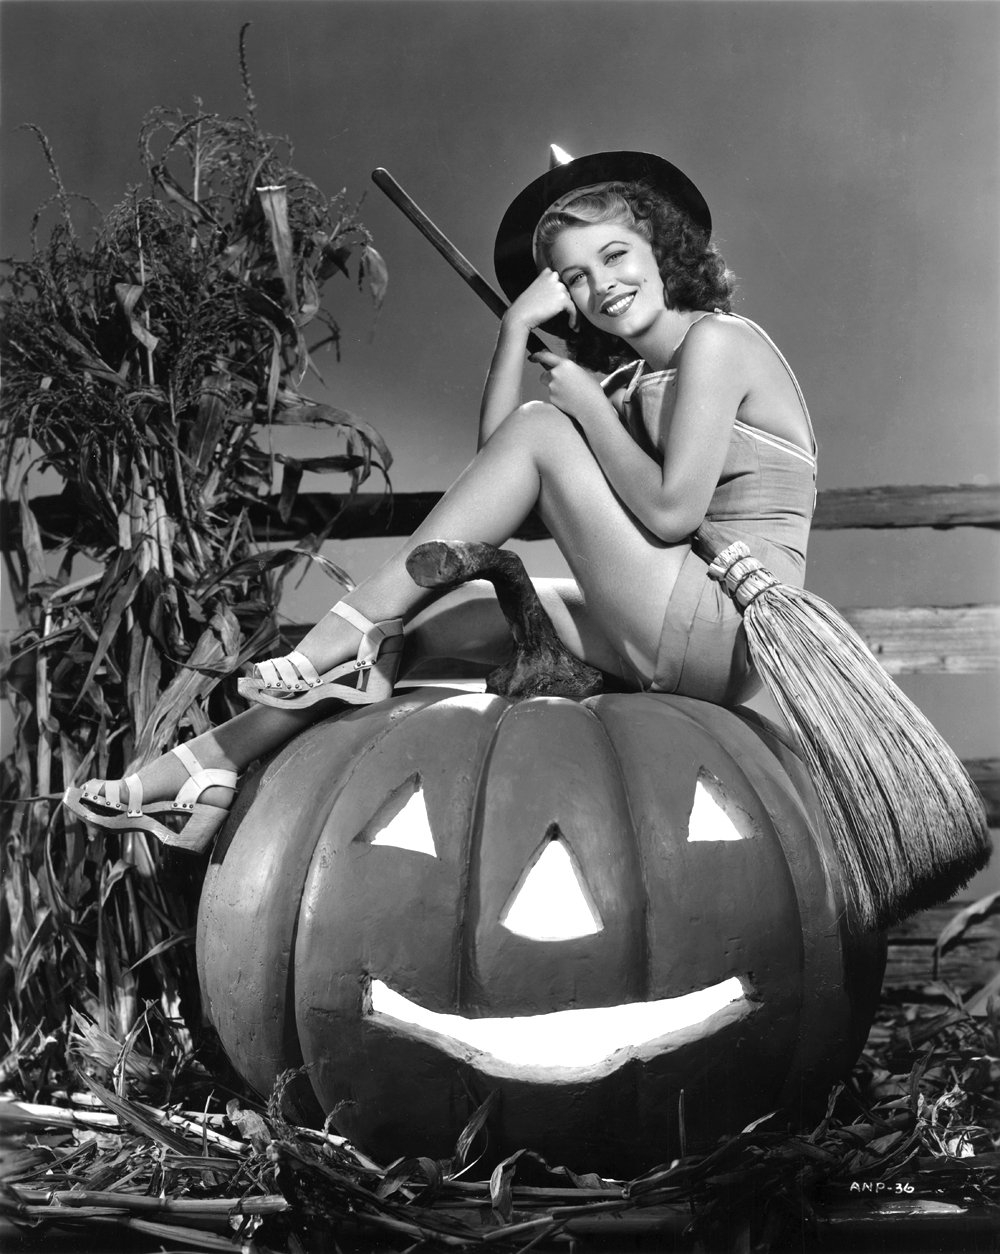 ACTRESS ANNE NAGEL PIN-UP - 8X10 HALLOWEEN THEMED PUBLICITY PHOTO (ZY-363)